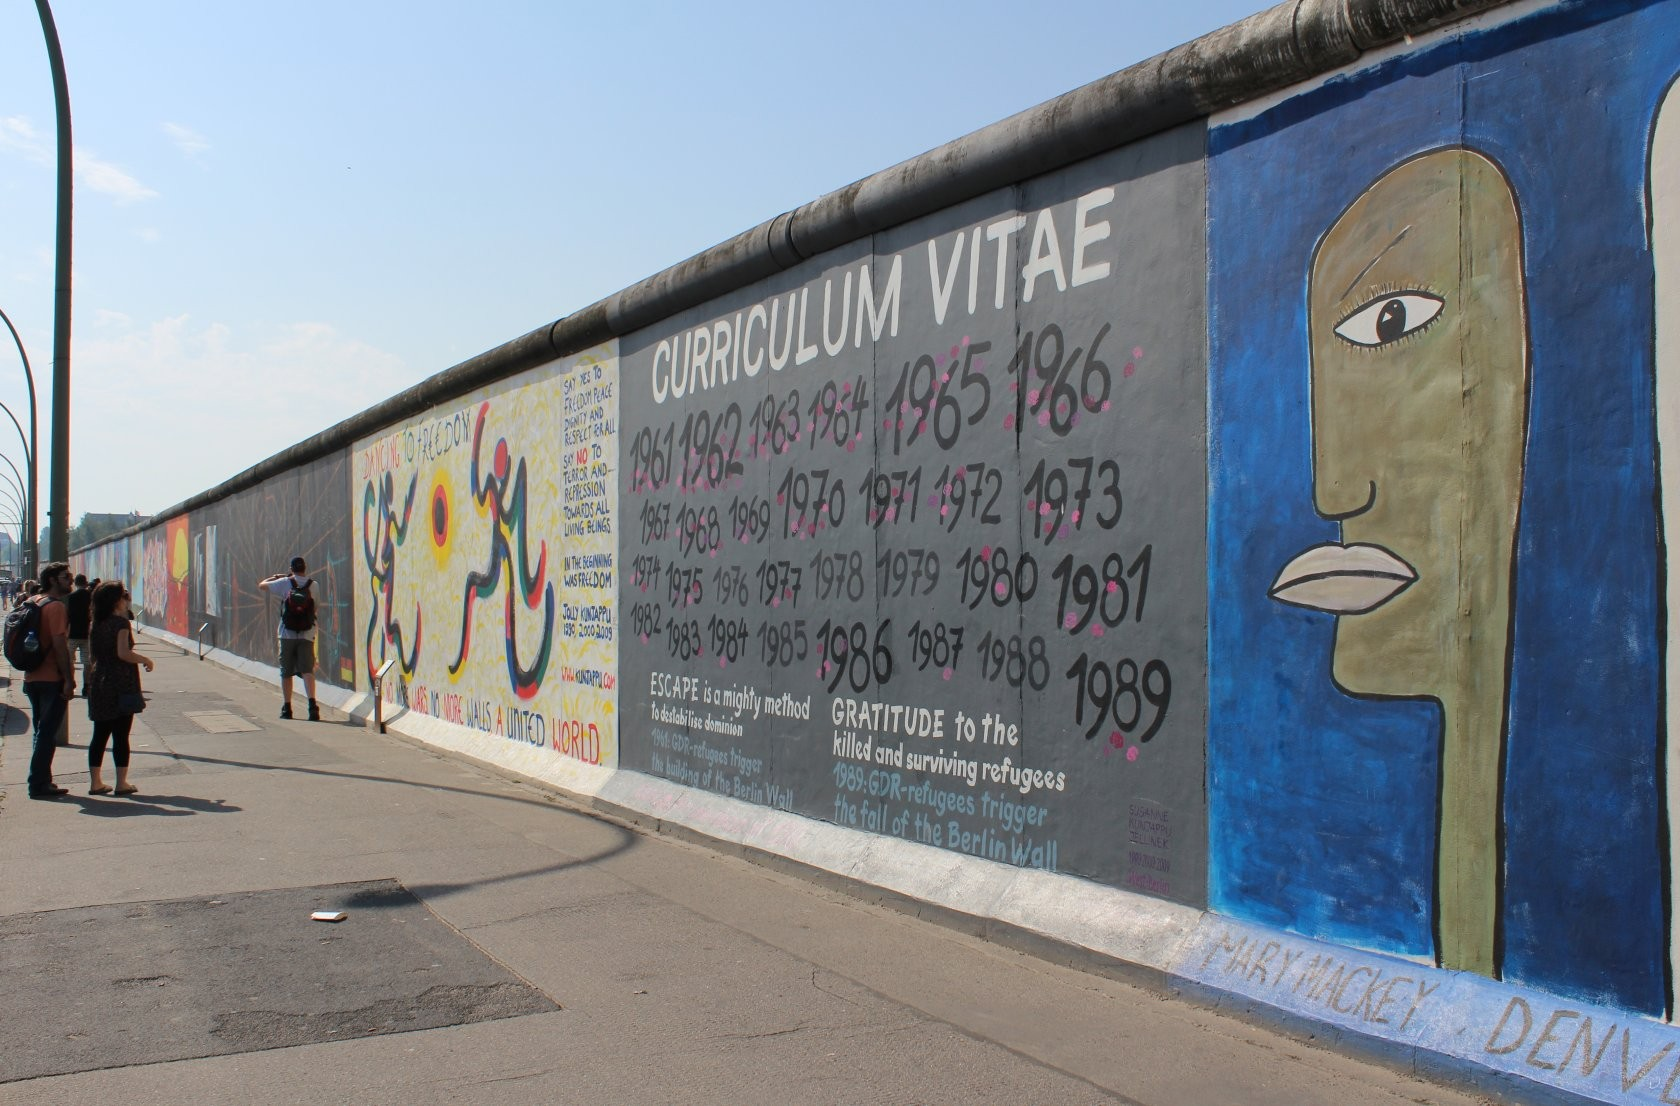 East Side Gallery IV